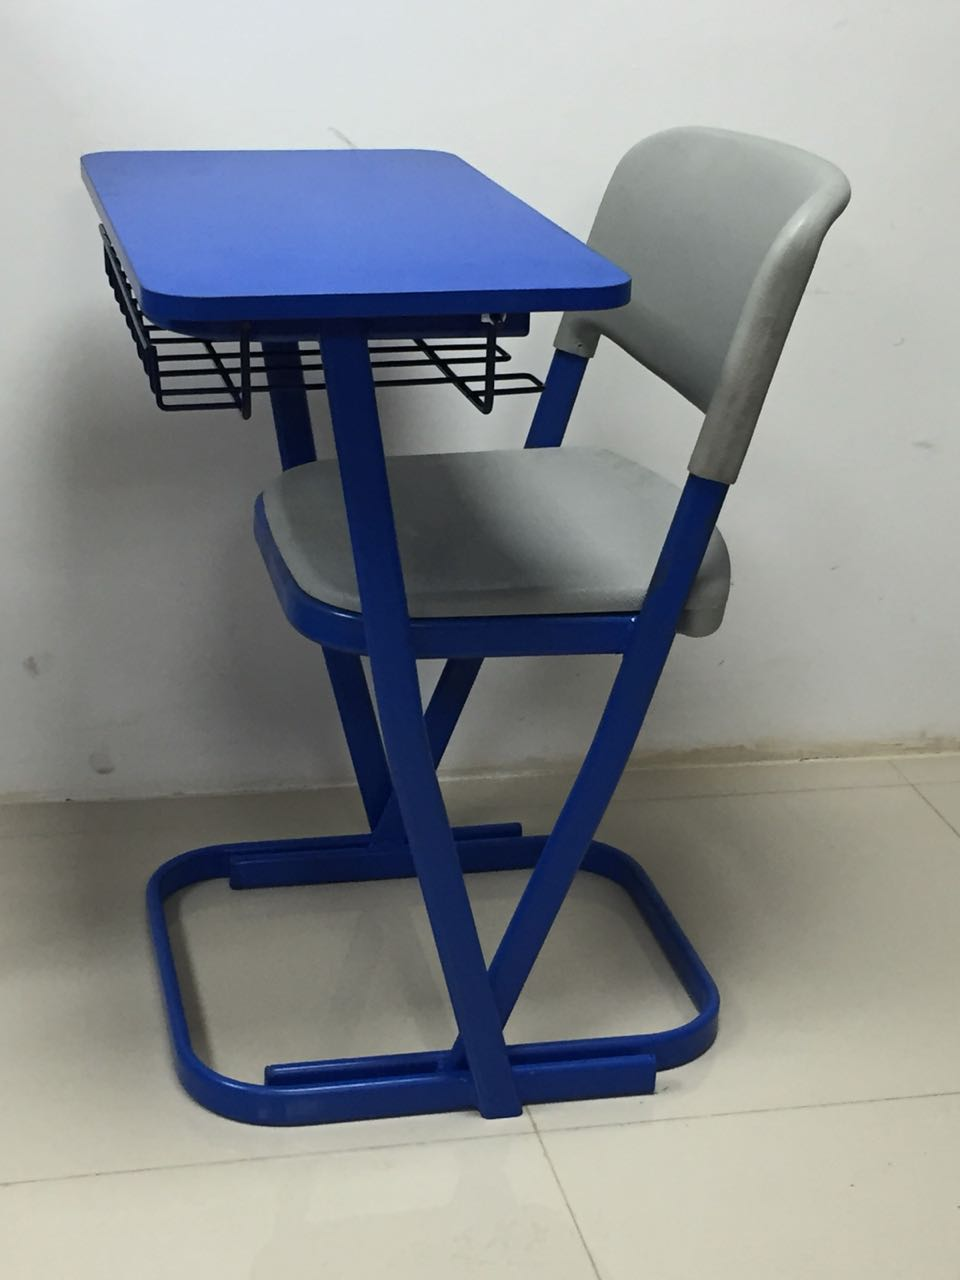 Seat Height For 900mm Bench